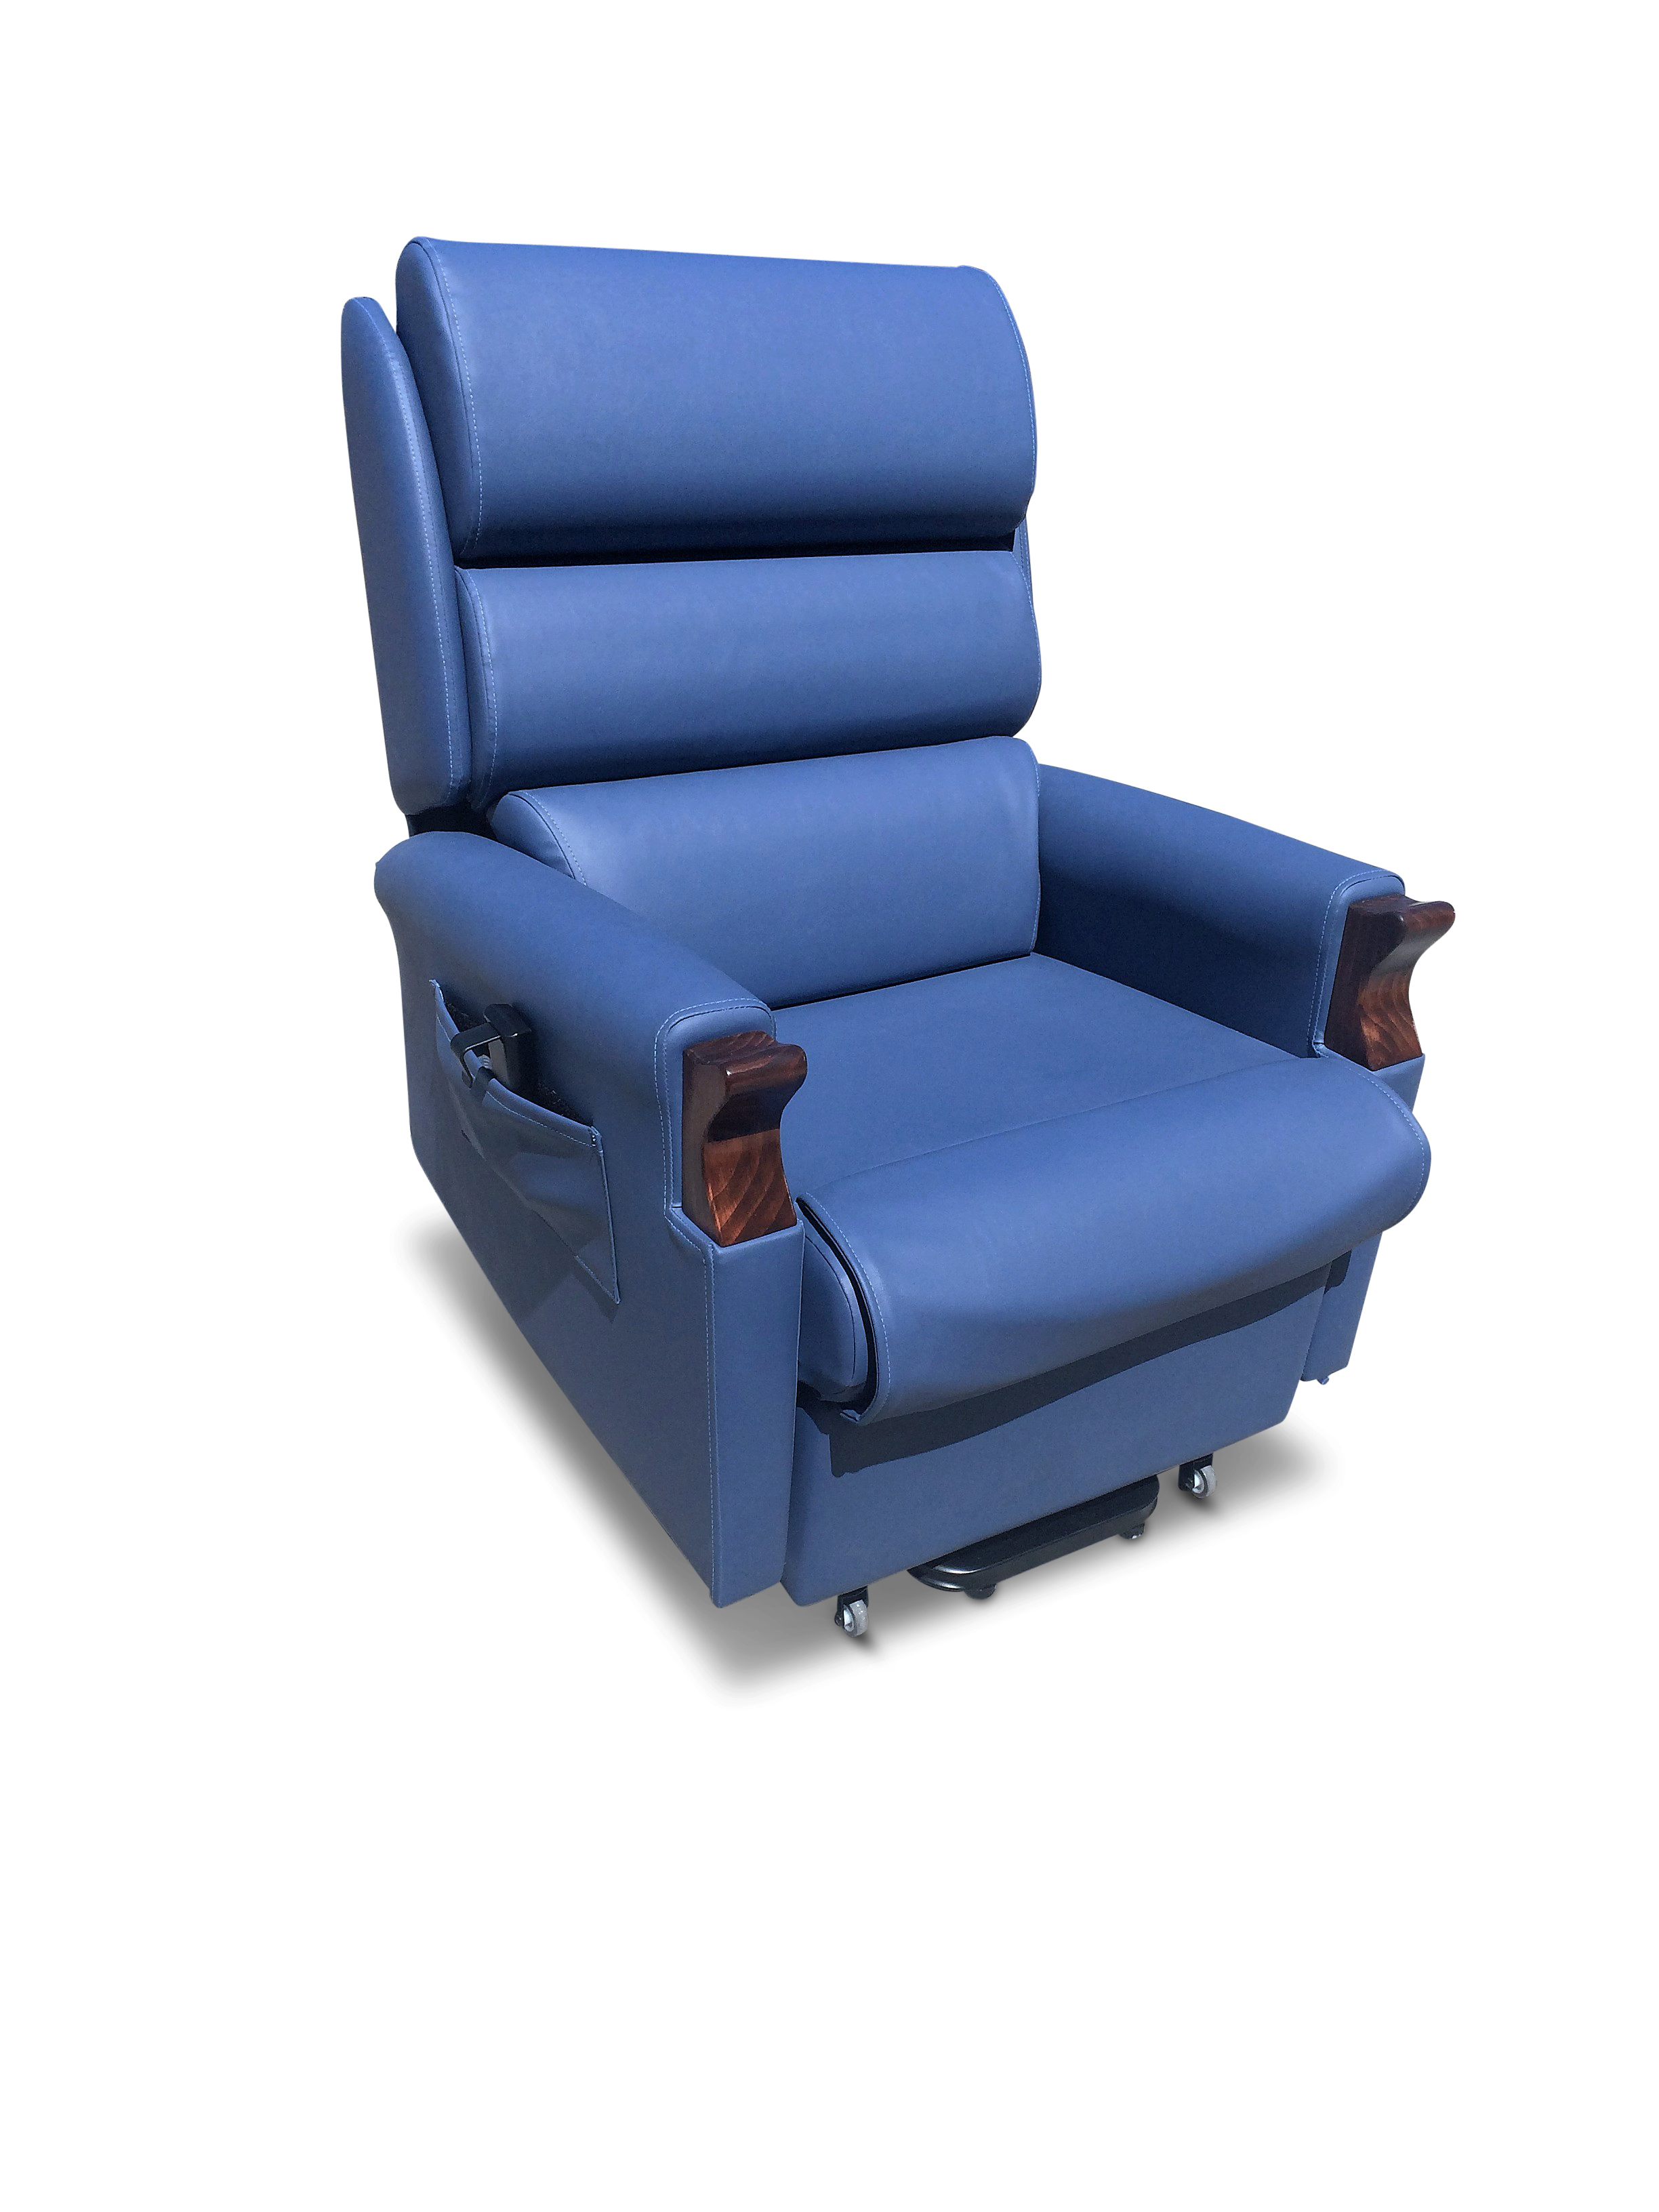 Beaumont Lift Recliner Comseat Australia